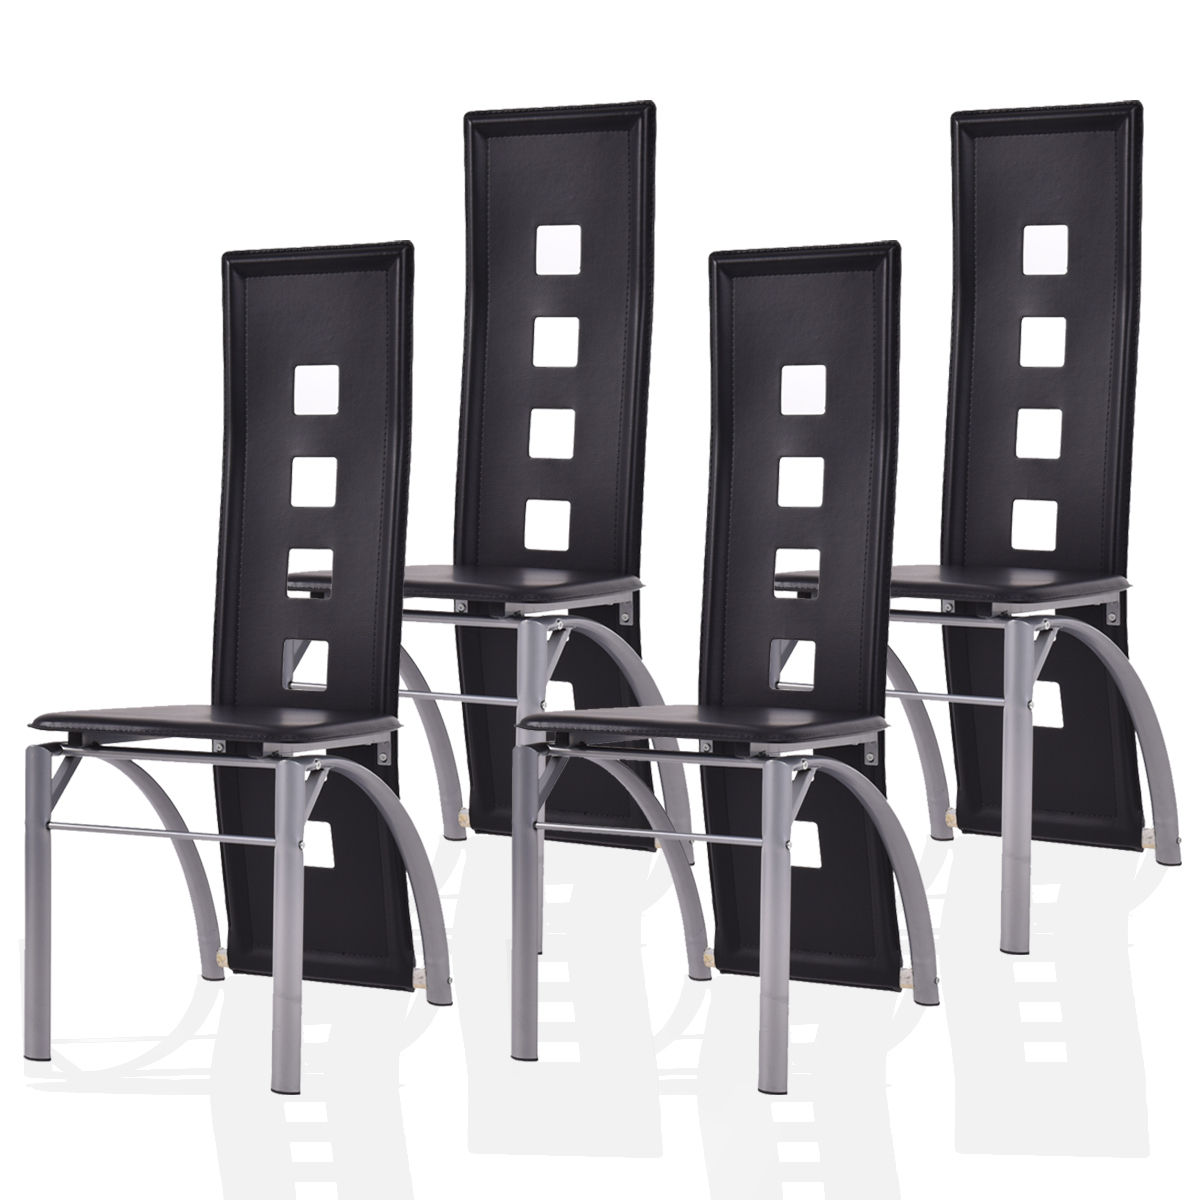 back home furniture. Costway Set Of 4 Dining Chairs PU Leather Steel Frame High Back Home Furniture Black T